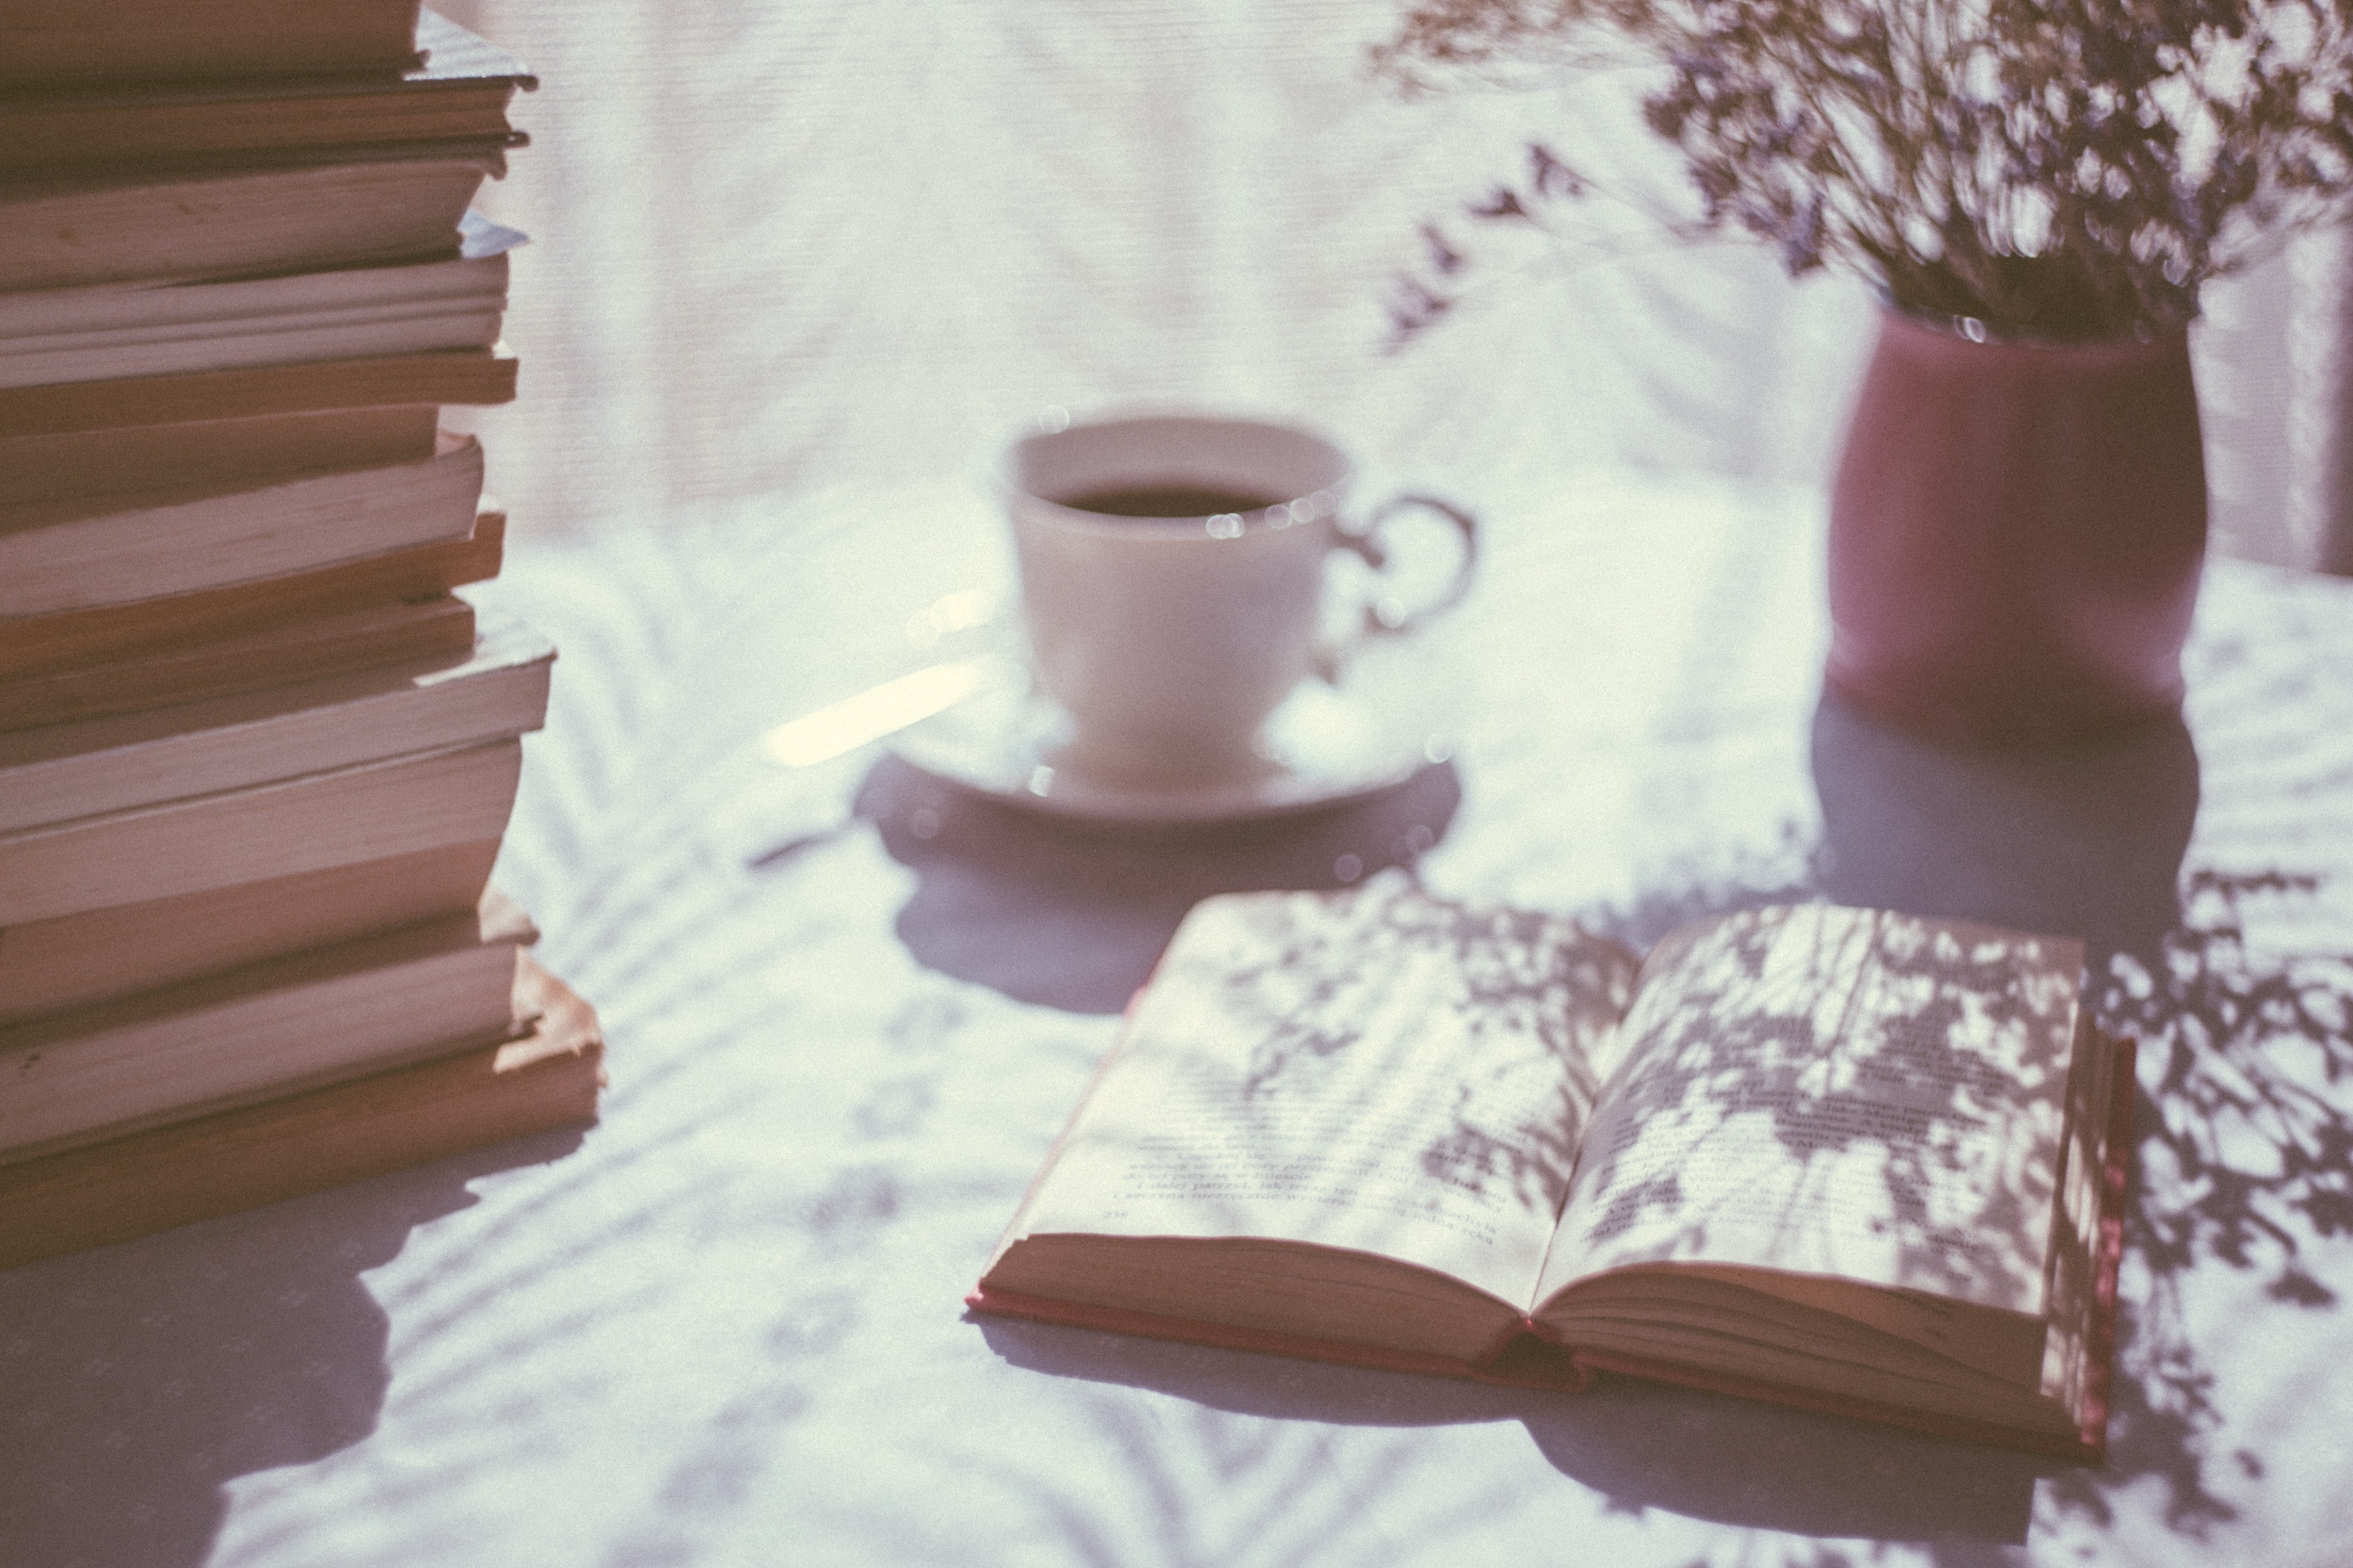 A pile of books sit on a table next to an open book and a cup of coffee. A vase with flowers sits at the back of the table, in front of white lace curtains.